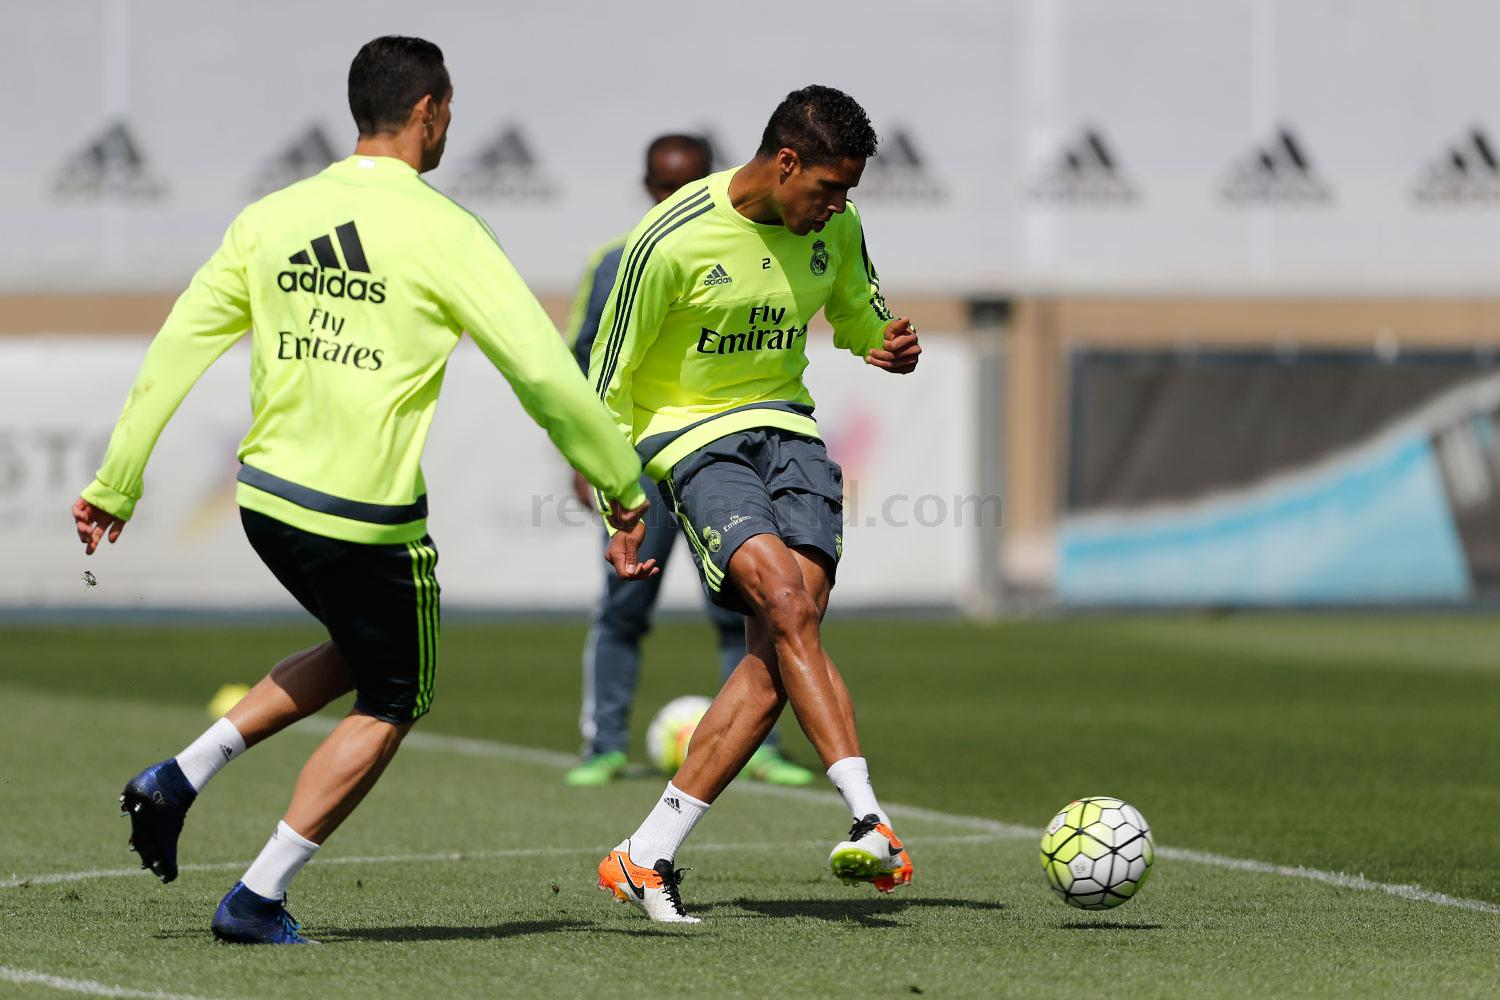 Real Madrid - Entrenamiento del Real Madrid - 12-05-2016